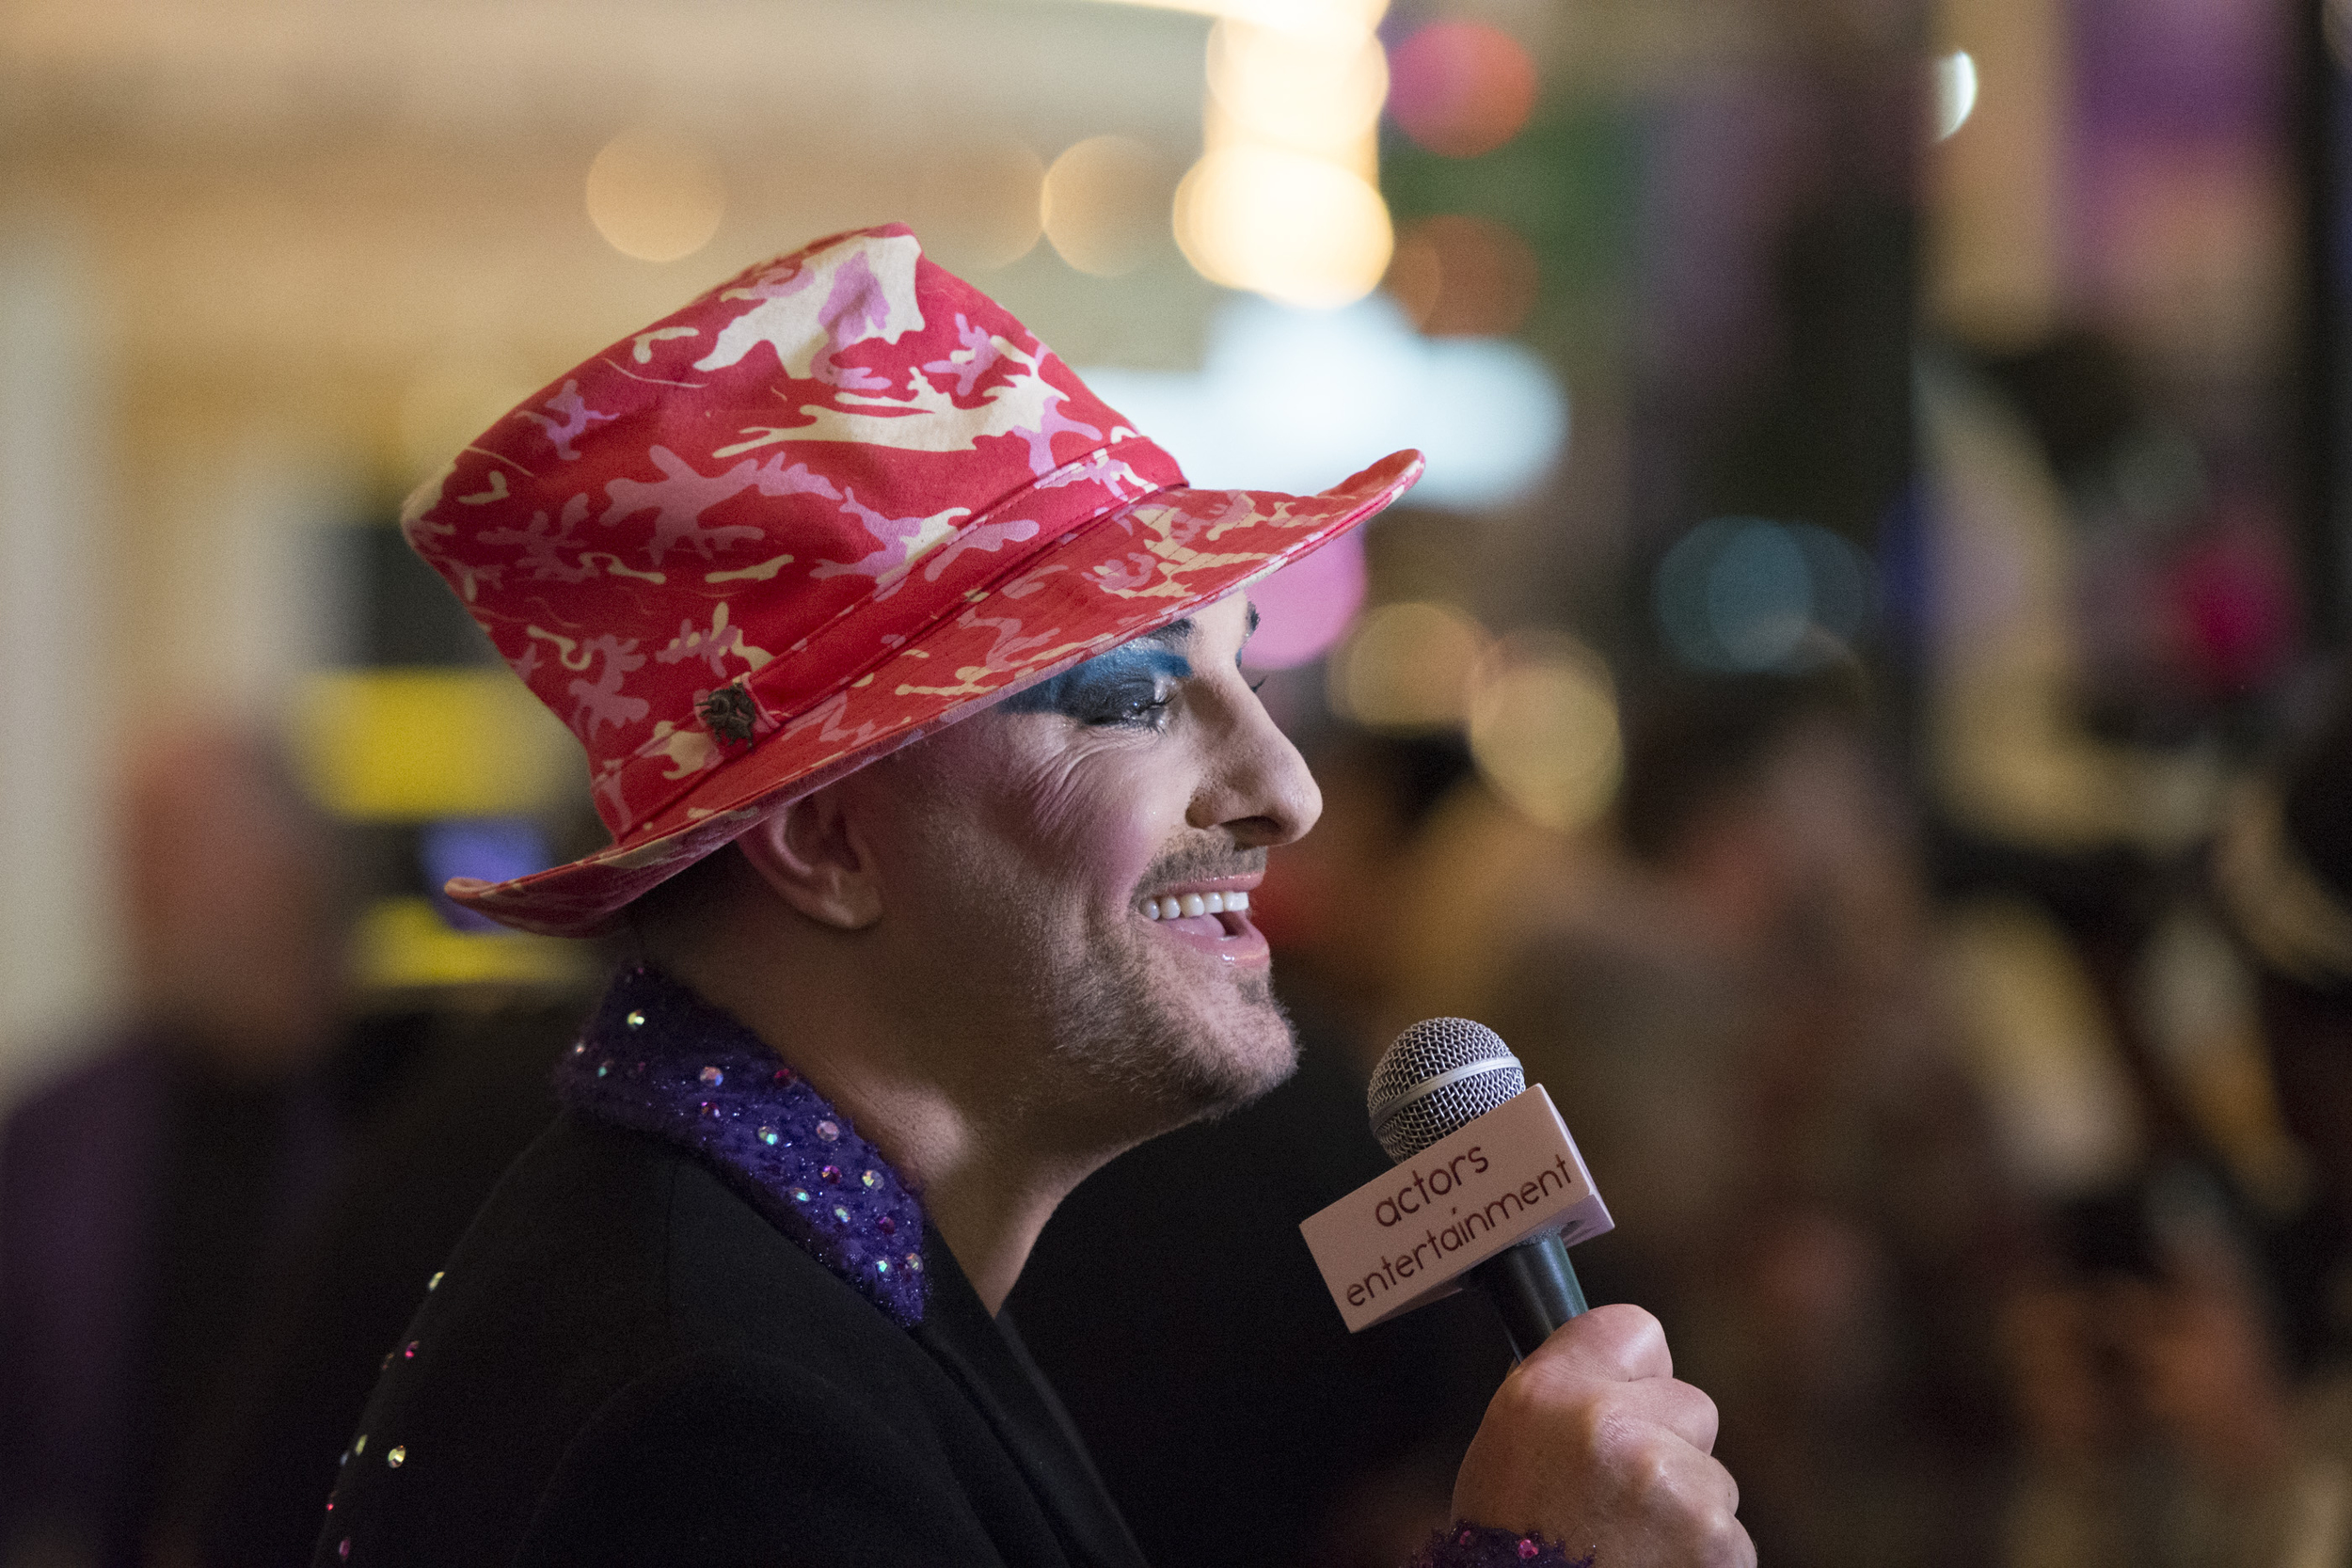 Boy George impersonator Keith George speaks with a reporter on the red carpet ahead of The Reel Awards at Golden Nugget Hotel Casino in Las Vegas Monday, Feb. 22, 2016. The Reel Awards are meant to be a humorous tribute to the real Academy Awards. Jason Ogulnik/Las Vegas Review-Journal